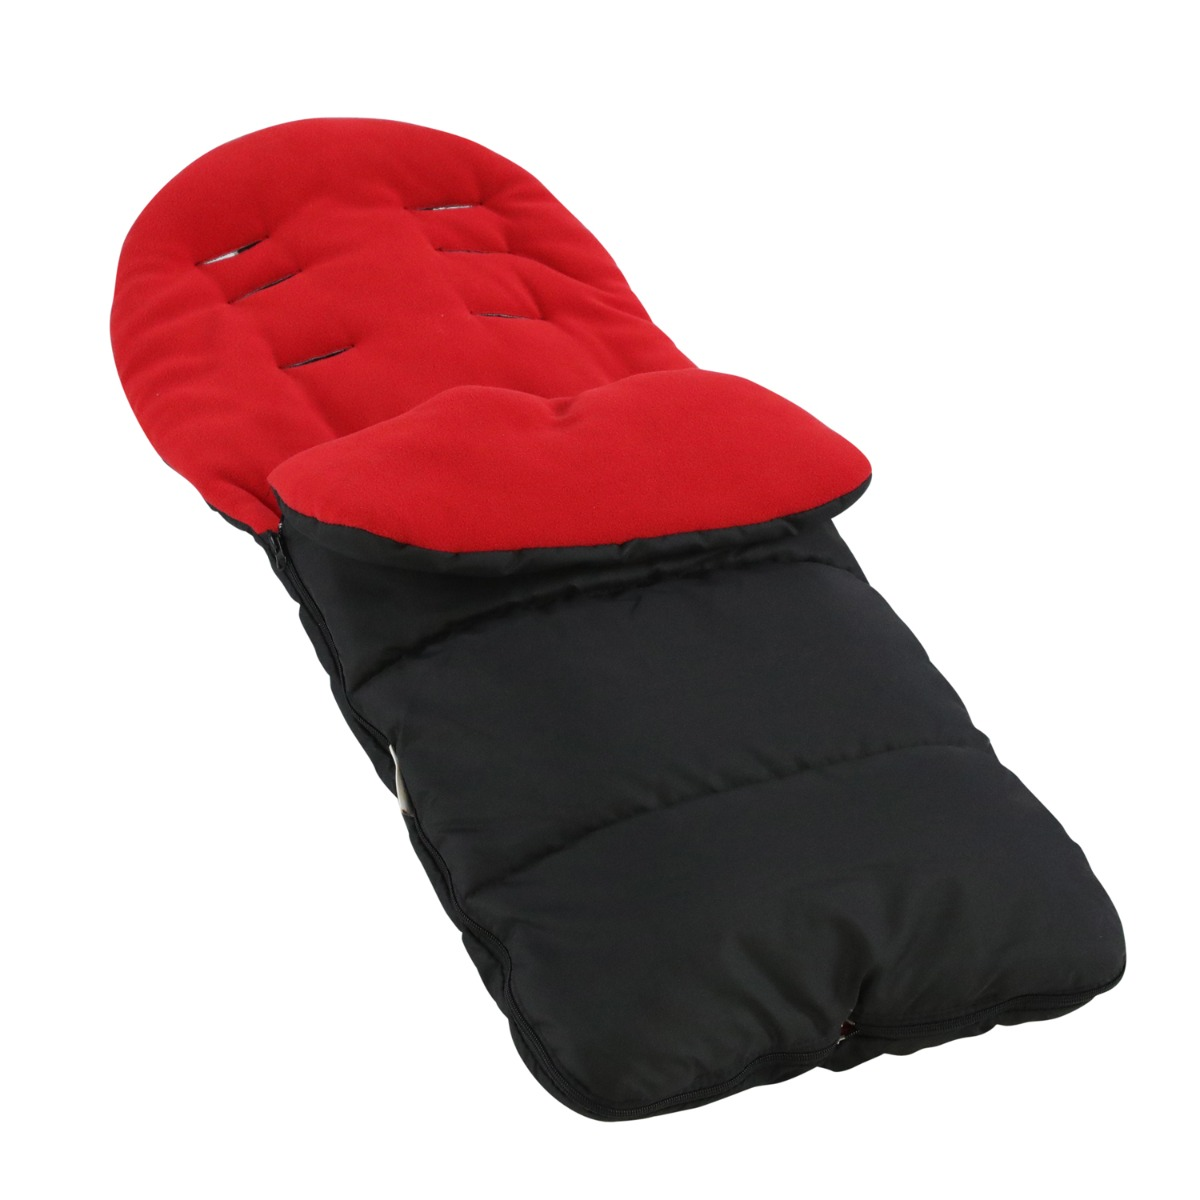 Universal-Pushchair-Footmuff-Cosytoes-Fleece-Lined-Fit-For-Stroller-Prams-Buggy thumbnail 26